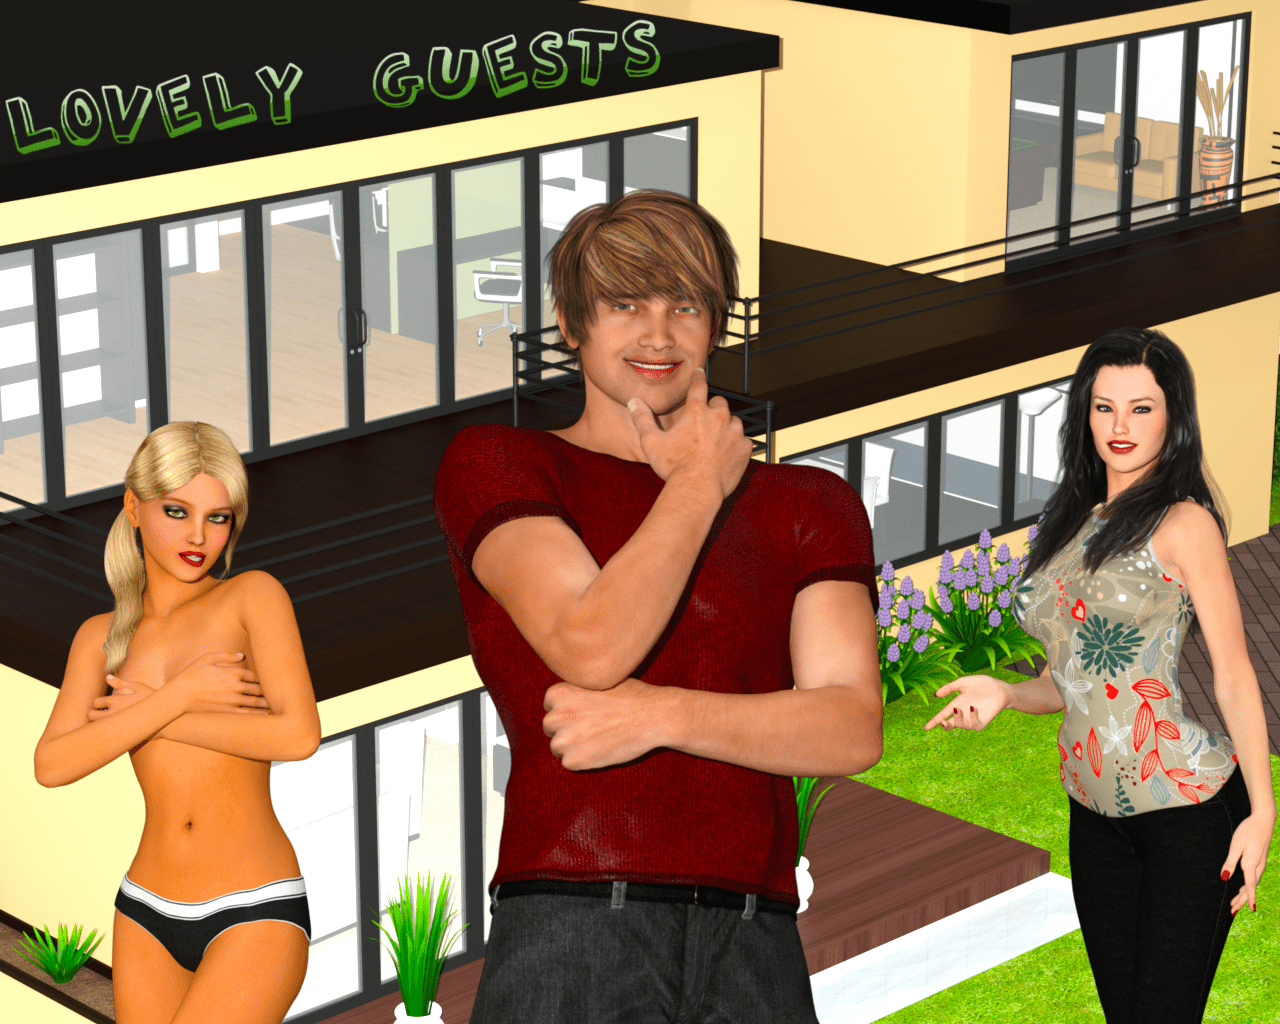 Lovely Guests – Version 0.9 - family game 3